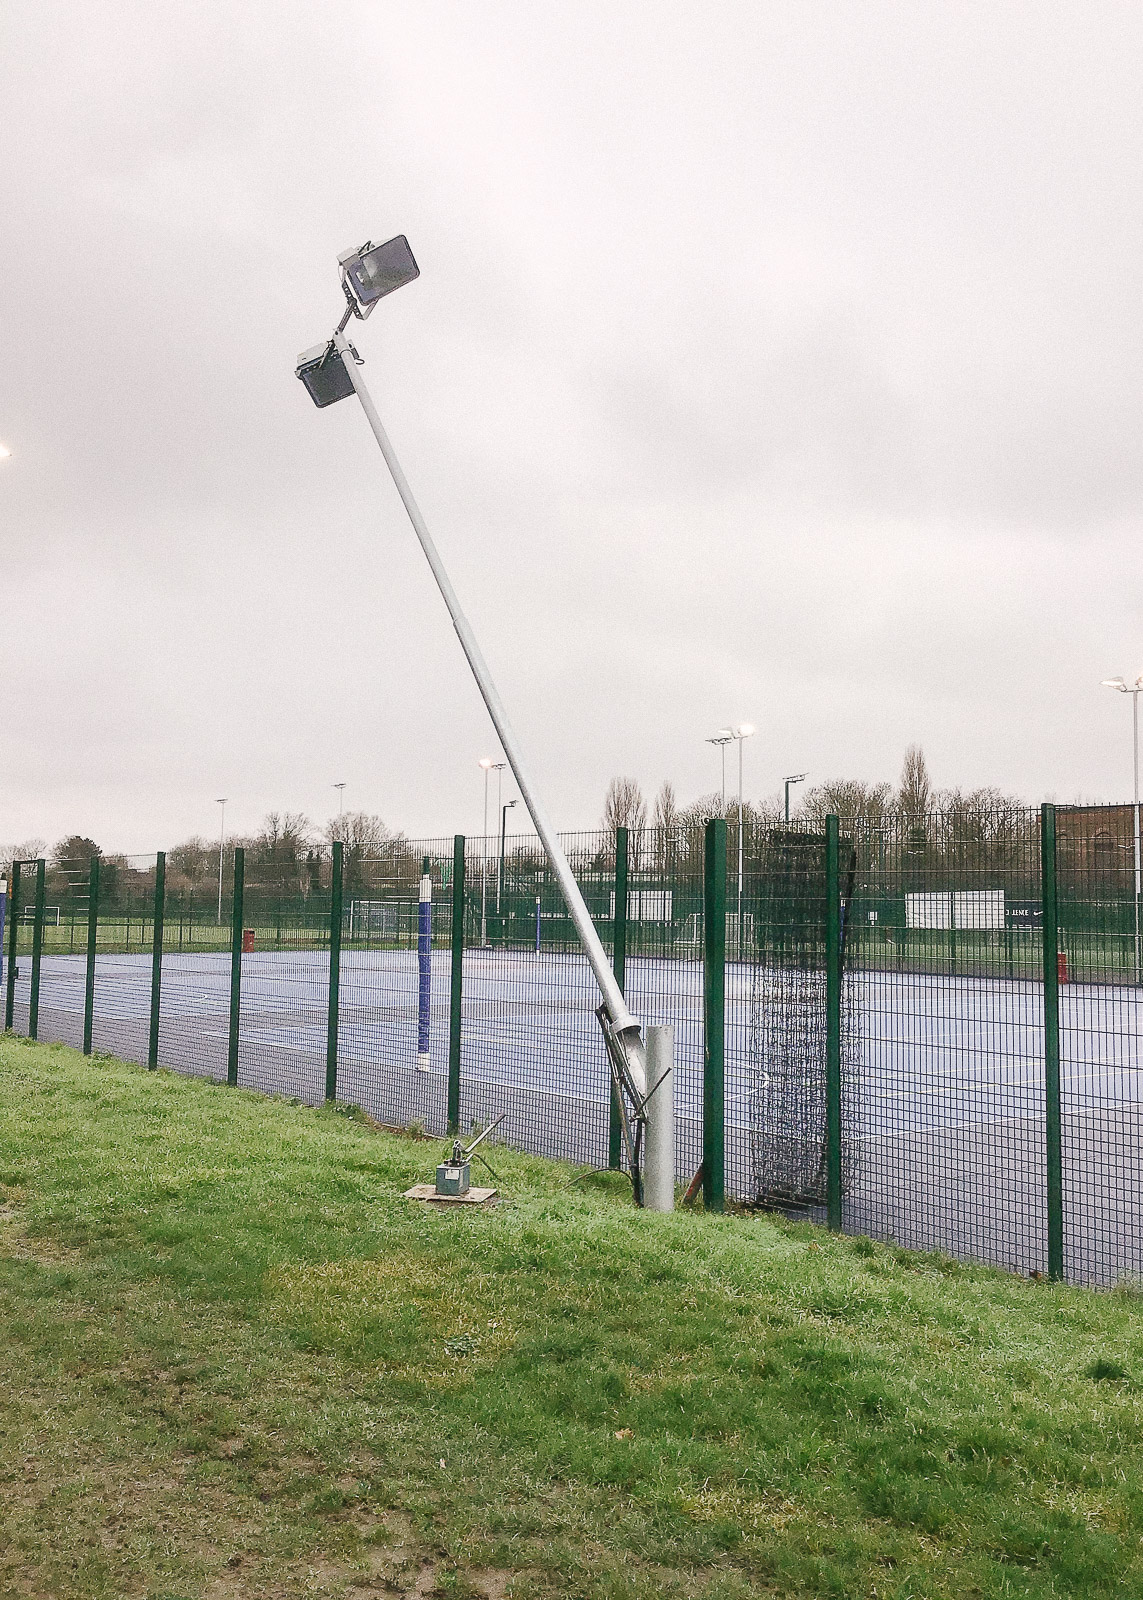 Floodlight maintenance carried out by Surfacelux in Catford